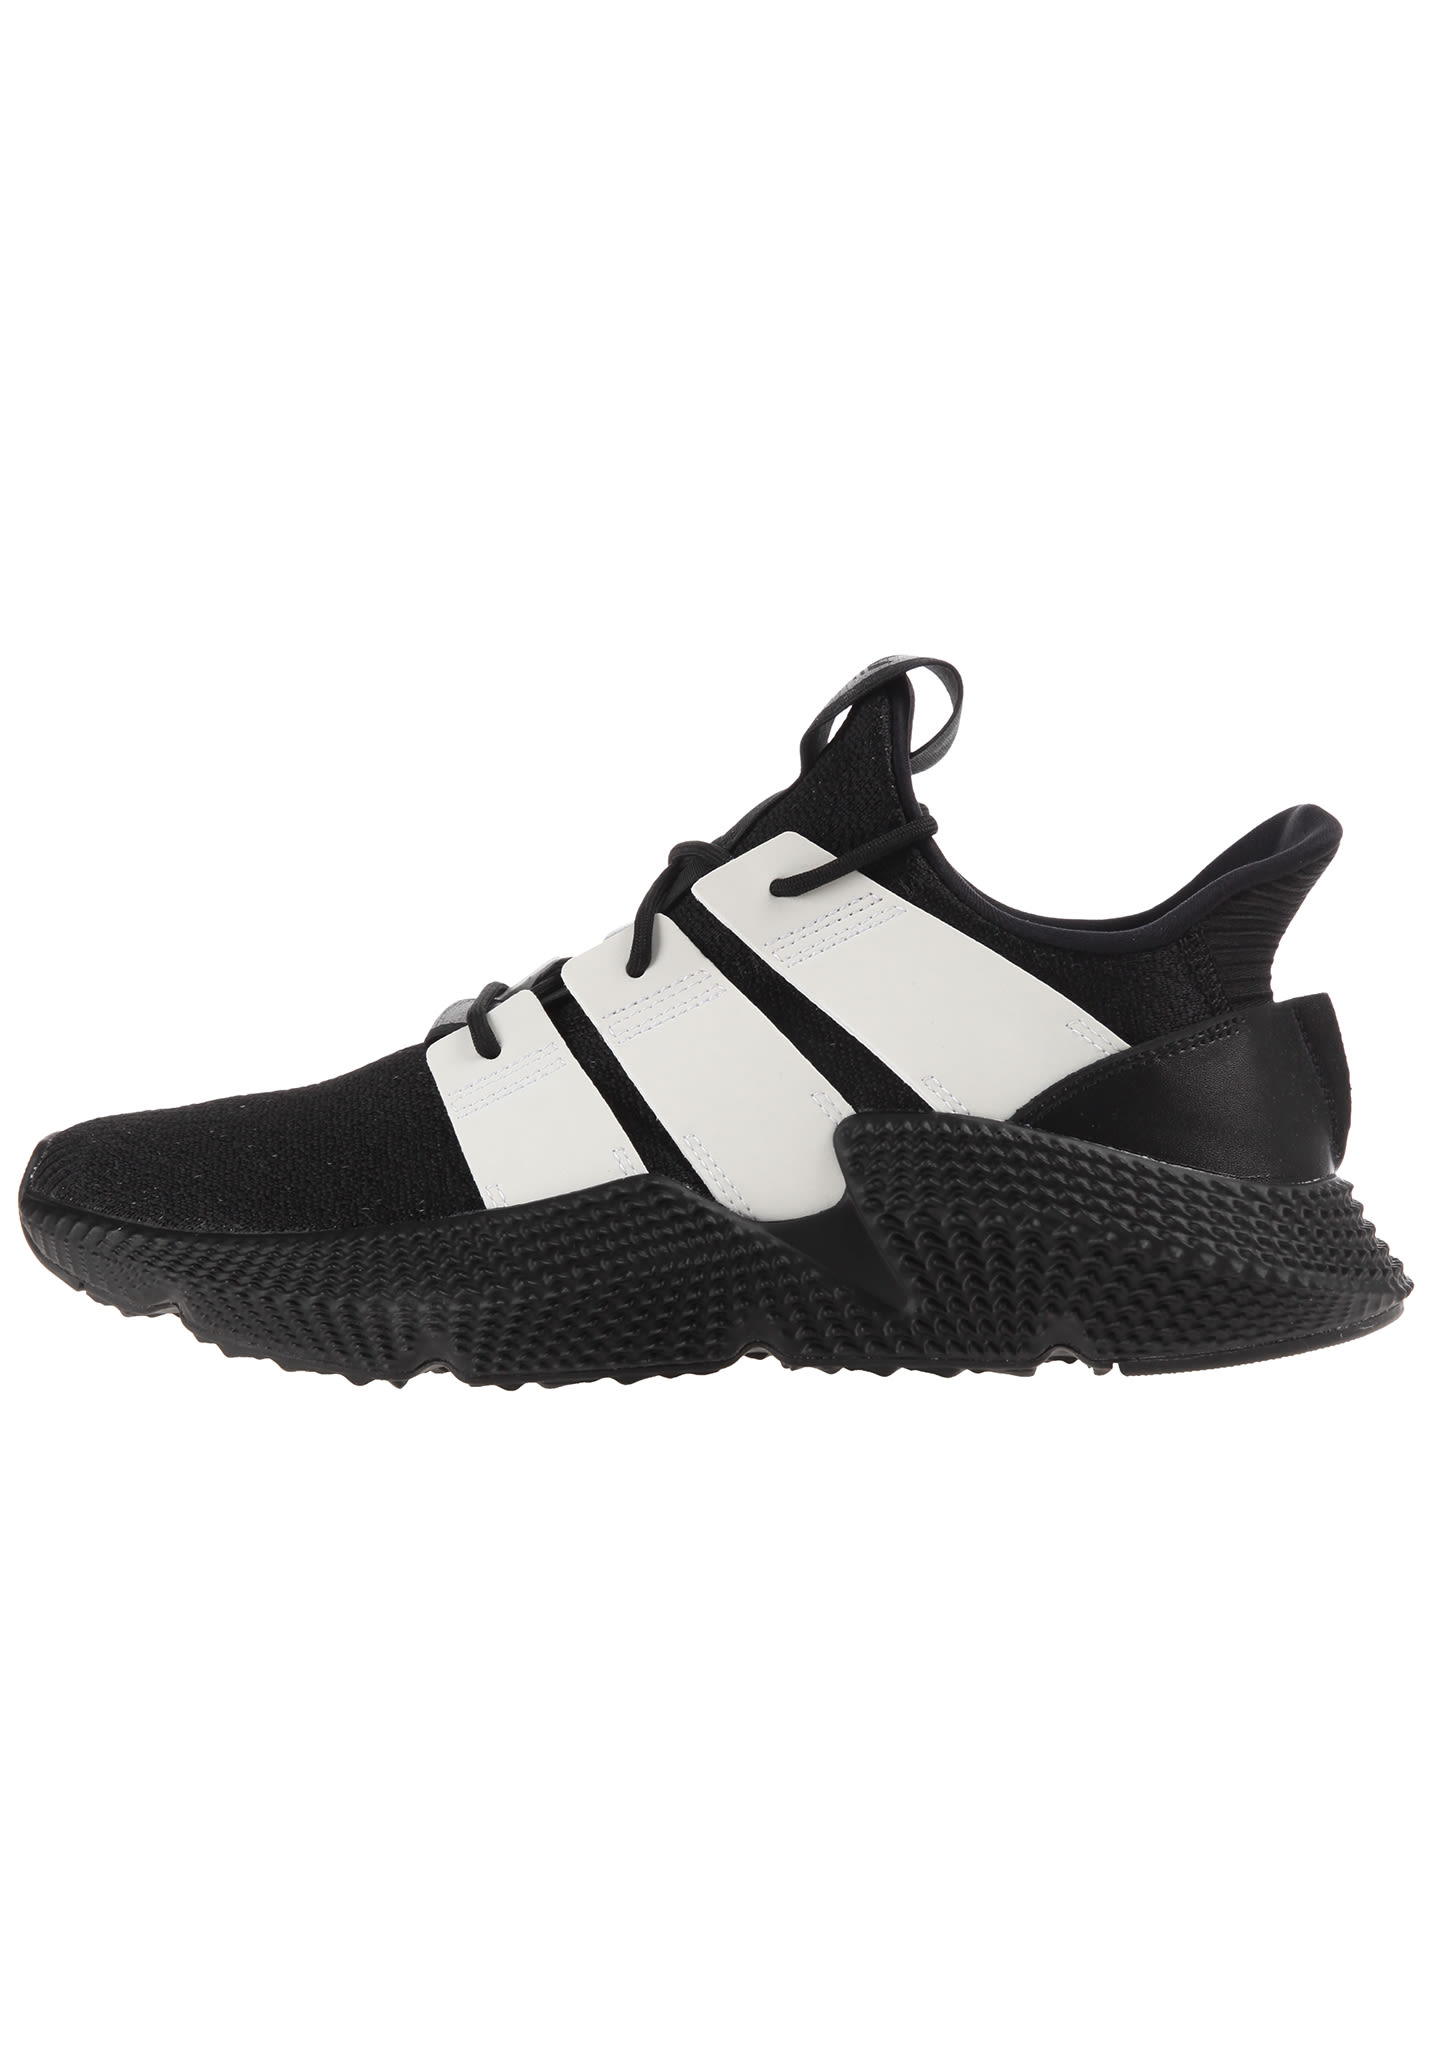 722652ae1 ADIDAS ORIGINALS Prophere - Sneakers for Men - Black - Planet Sports